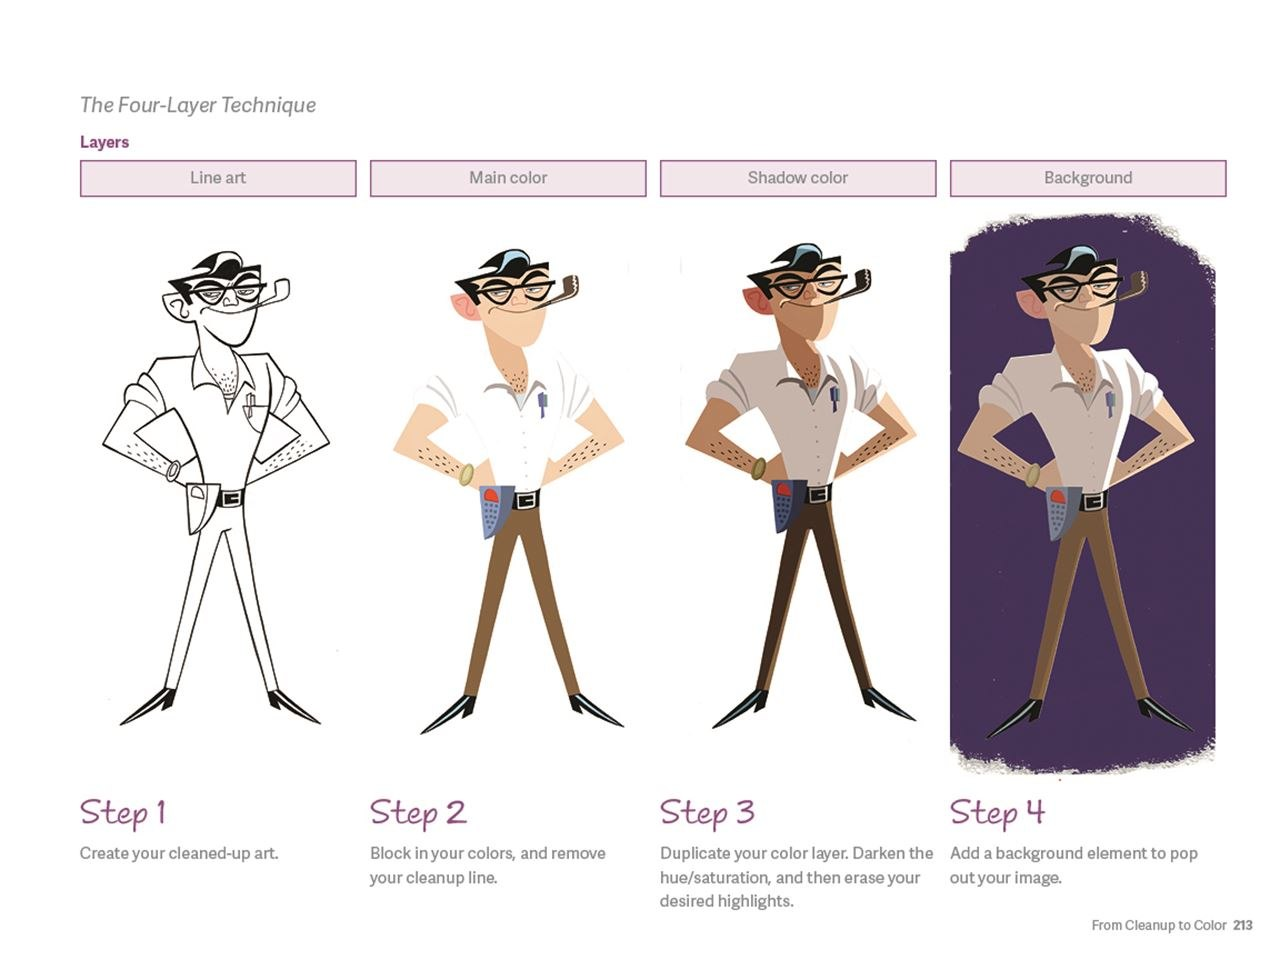 Stephen Silver Character Design App : Character design stephen silver download o estilo do character